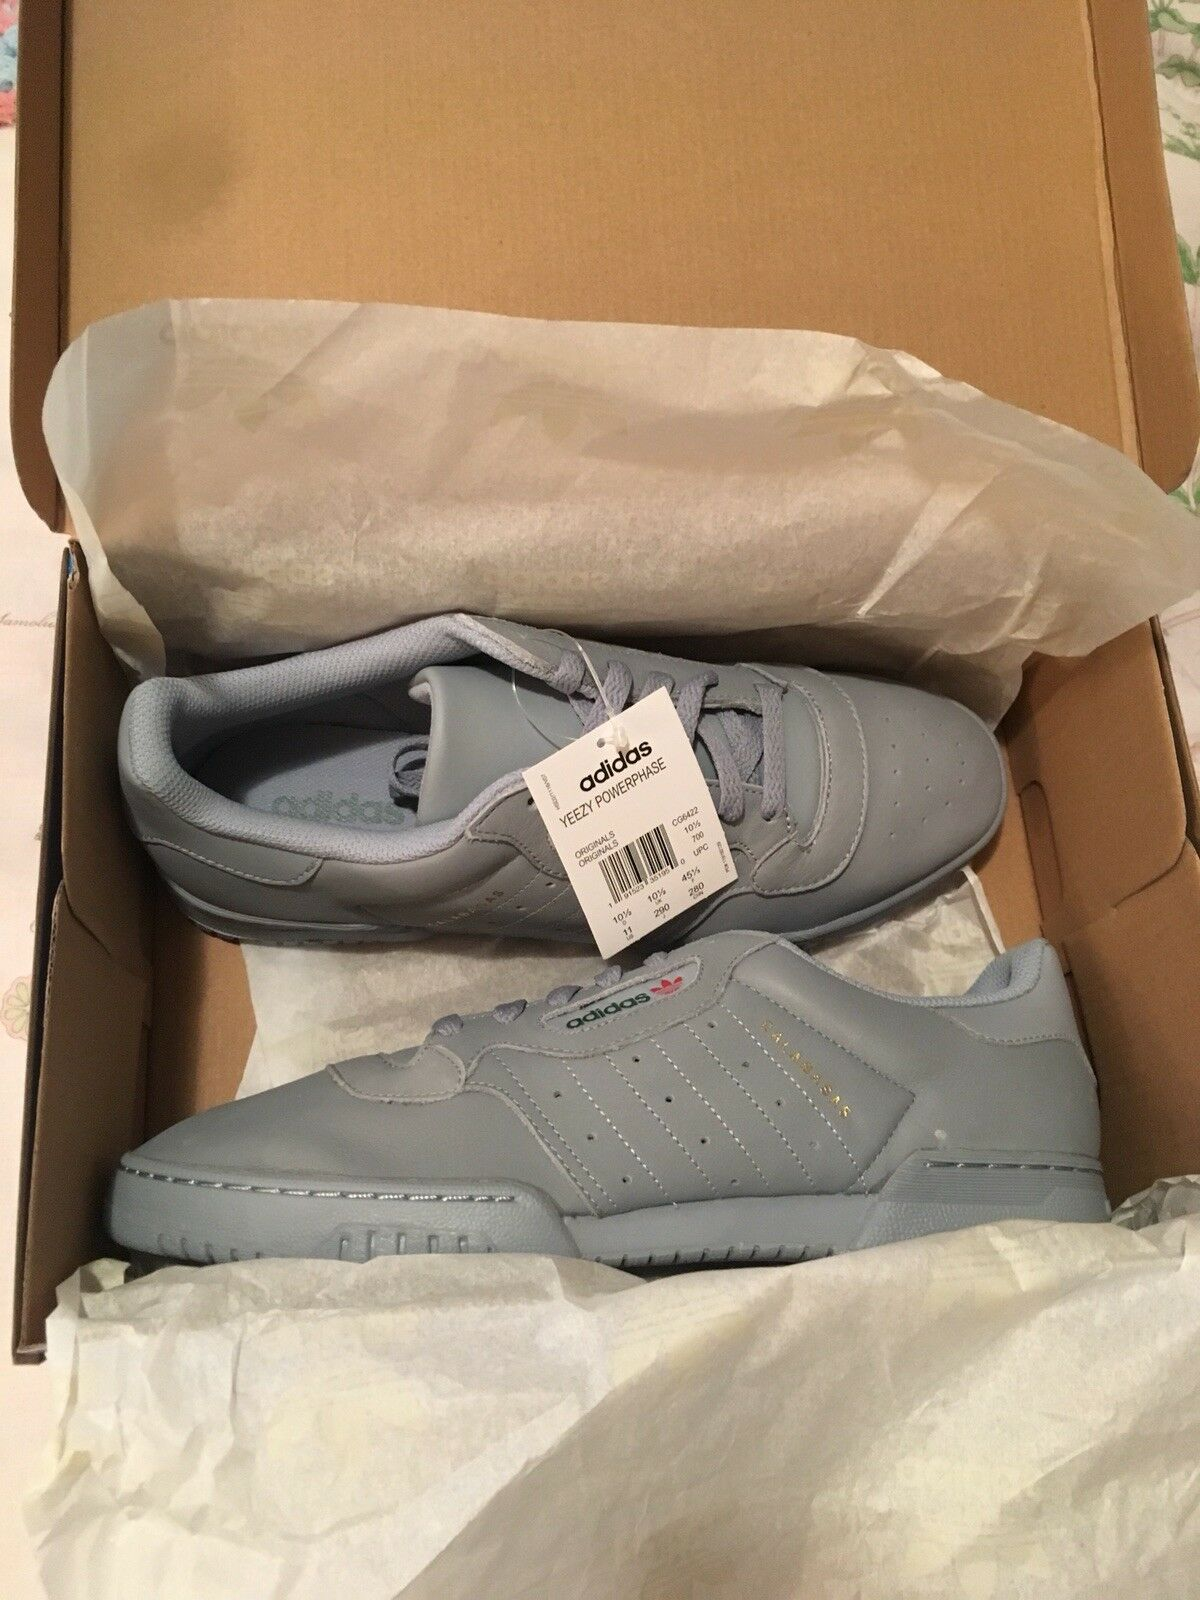 Adidas yeezy calabasas powerphase box grauen 11 new in box powerphase aca69f